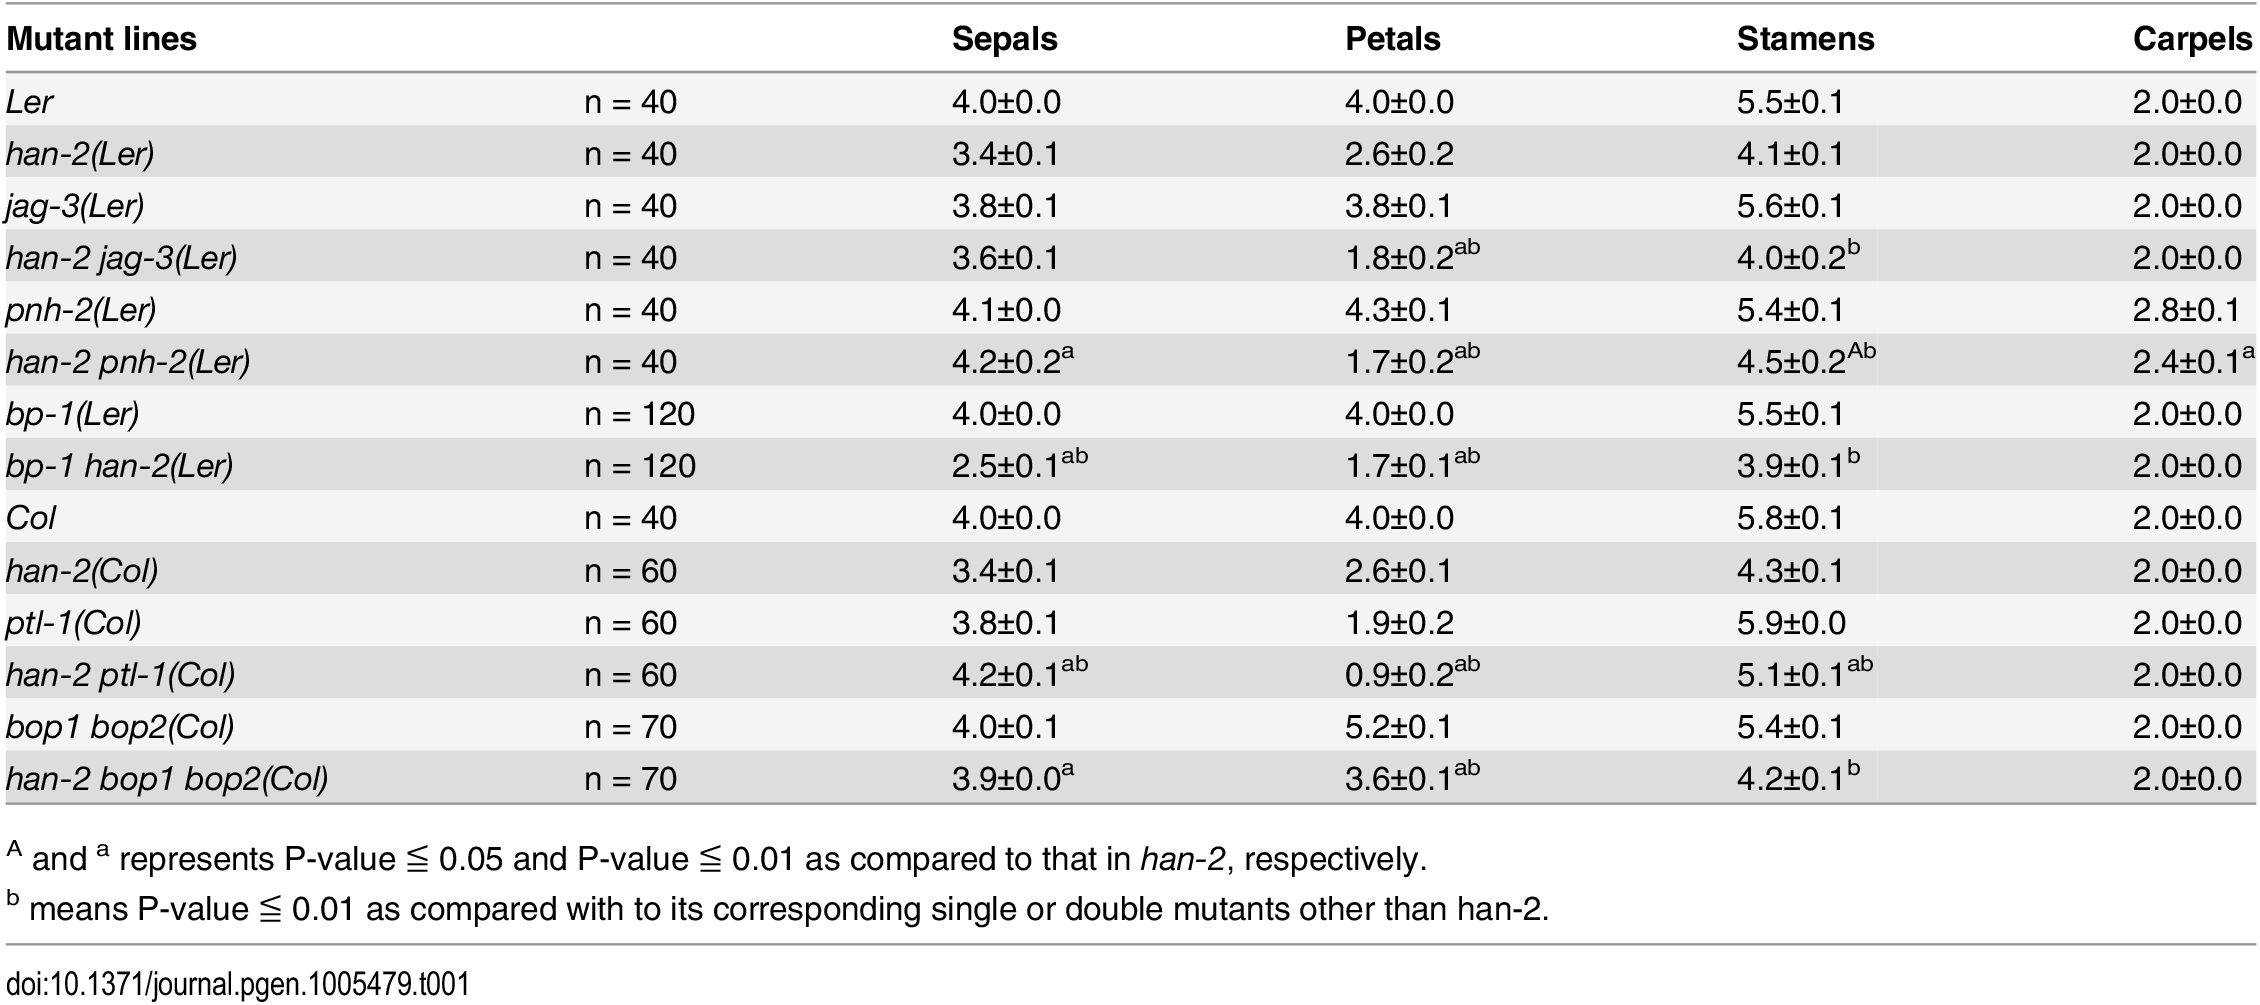 Characterization of the number of floral organs in different mutant lines.